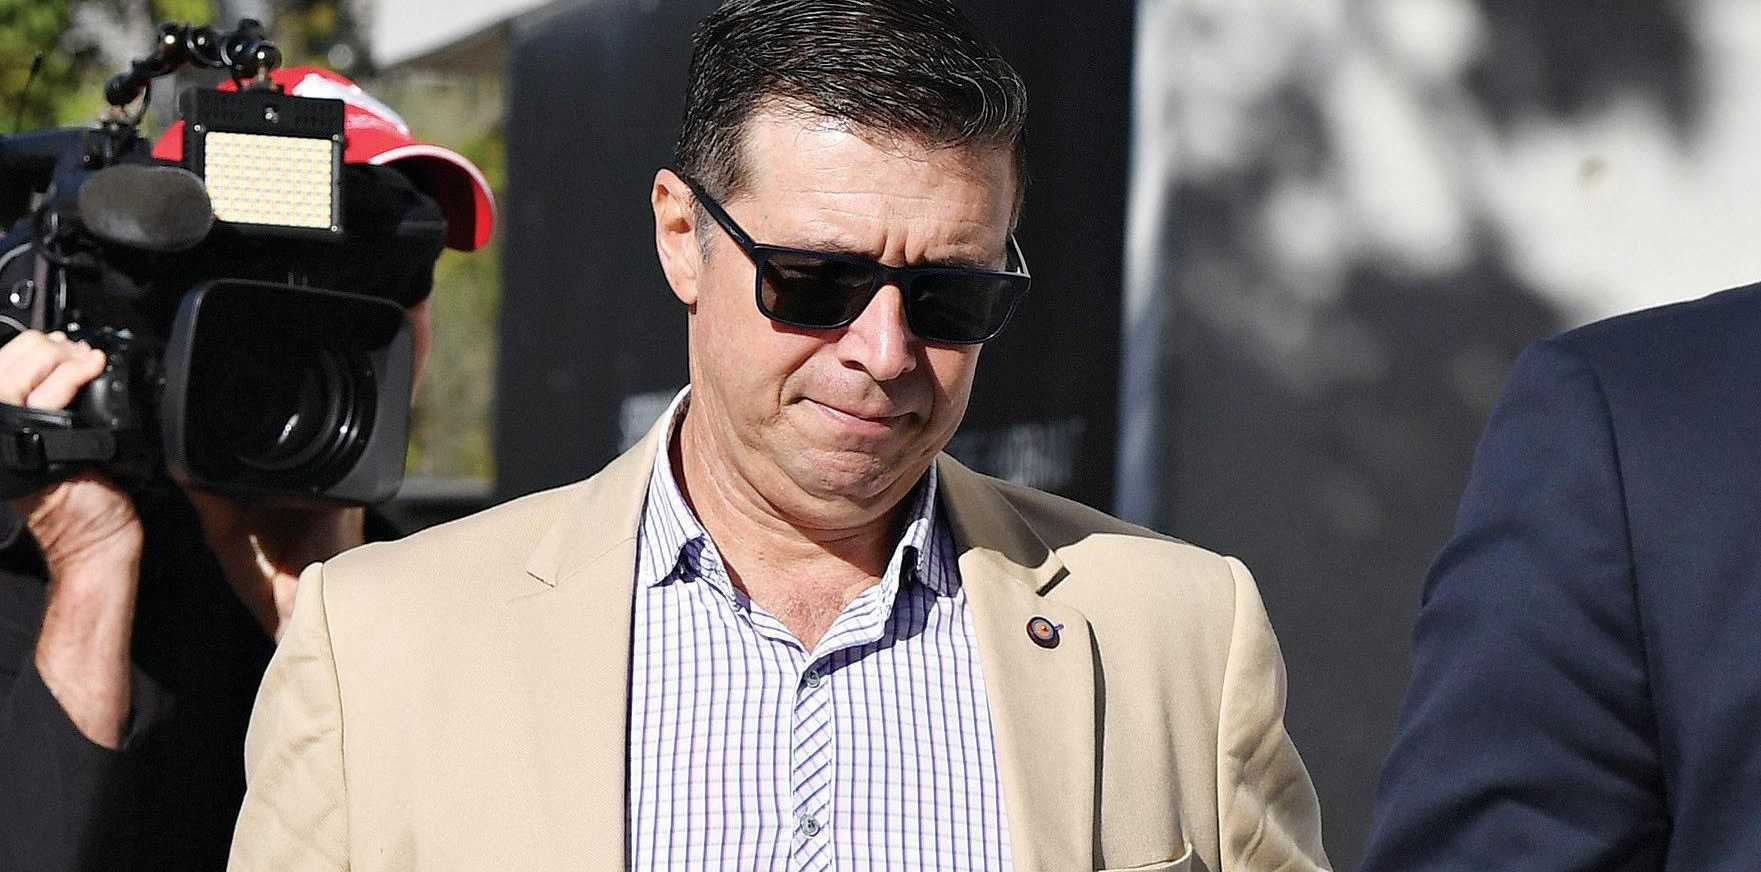 When Andrew Antoniolli questioned the relevance of the prosecutor's question Magistrate Anthony Gett took a swipe at his comment.